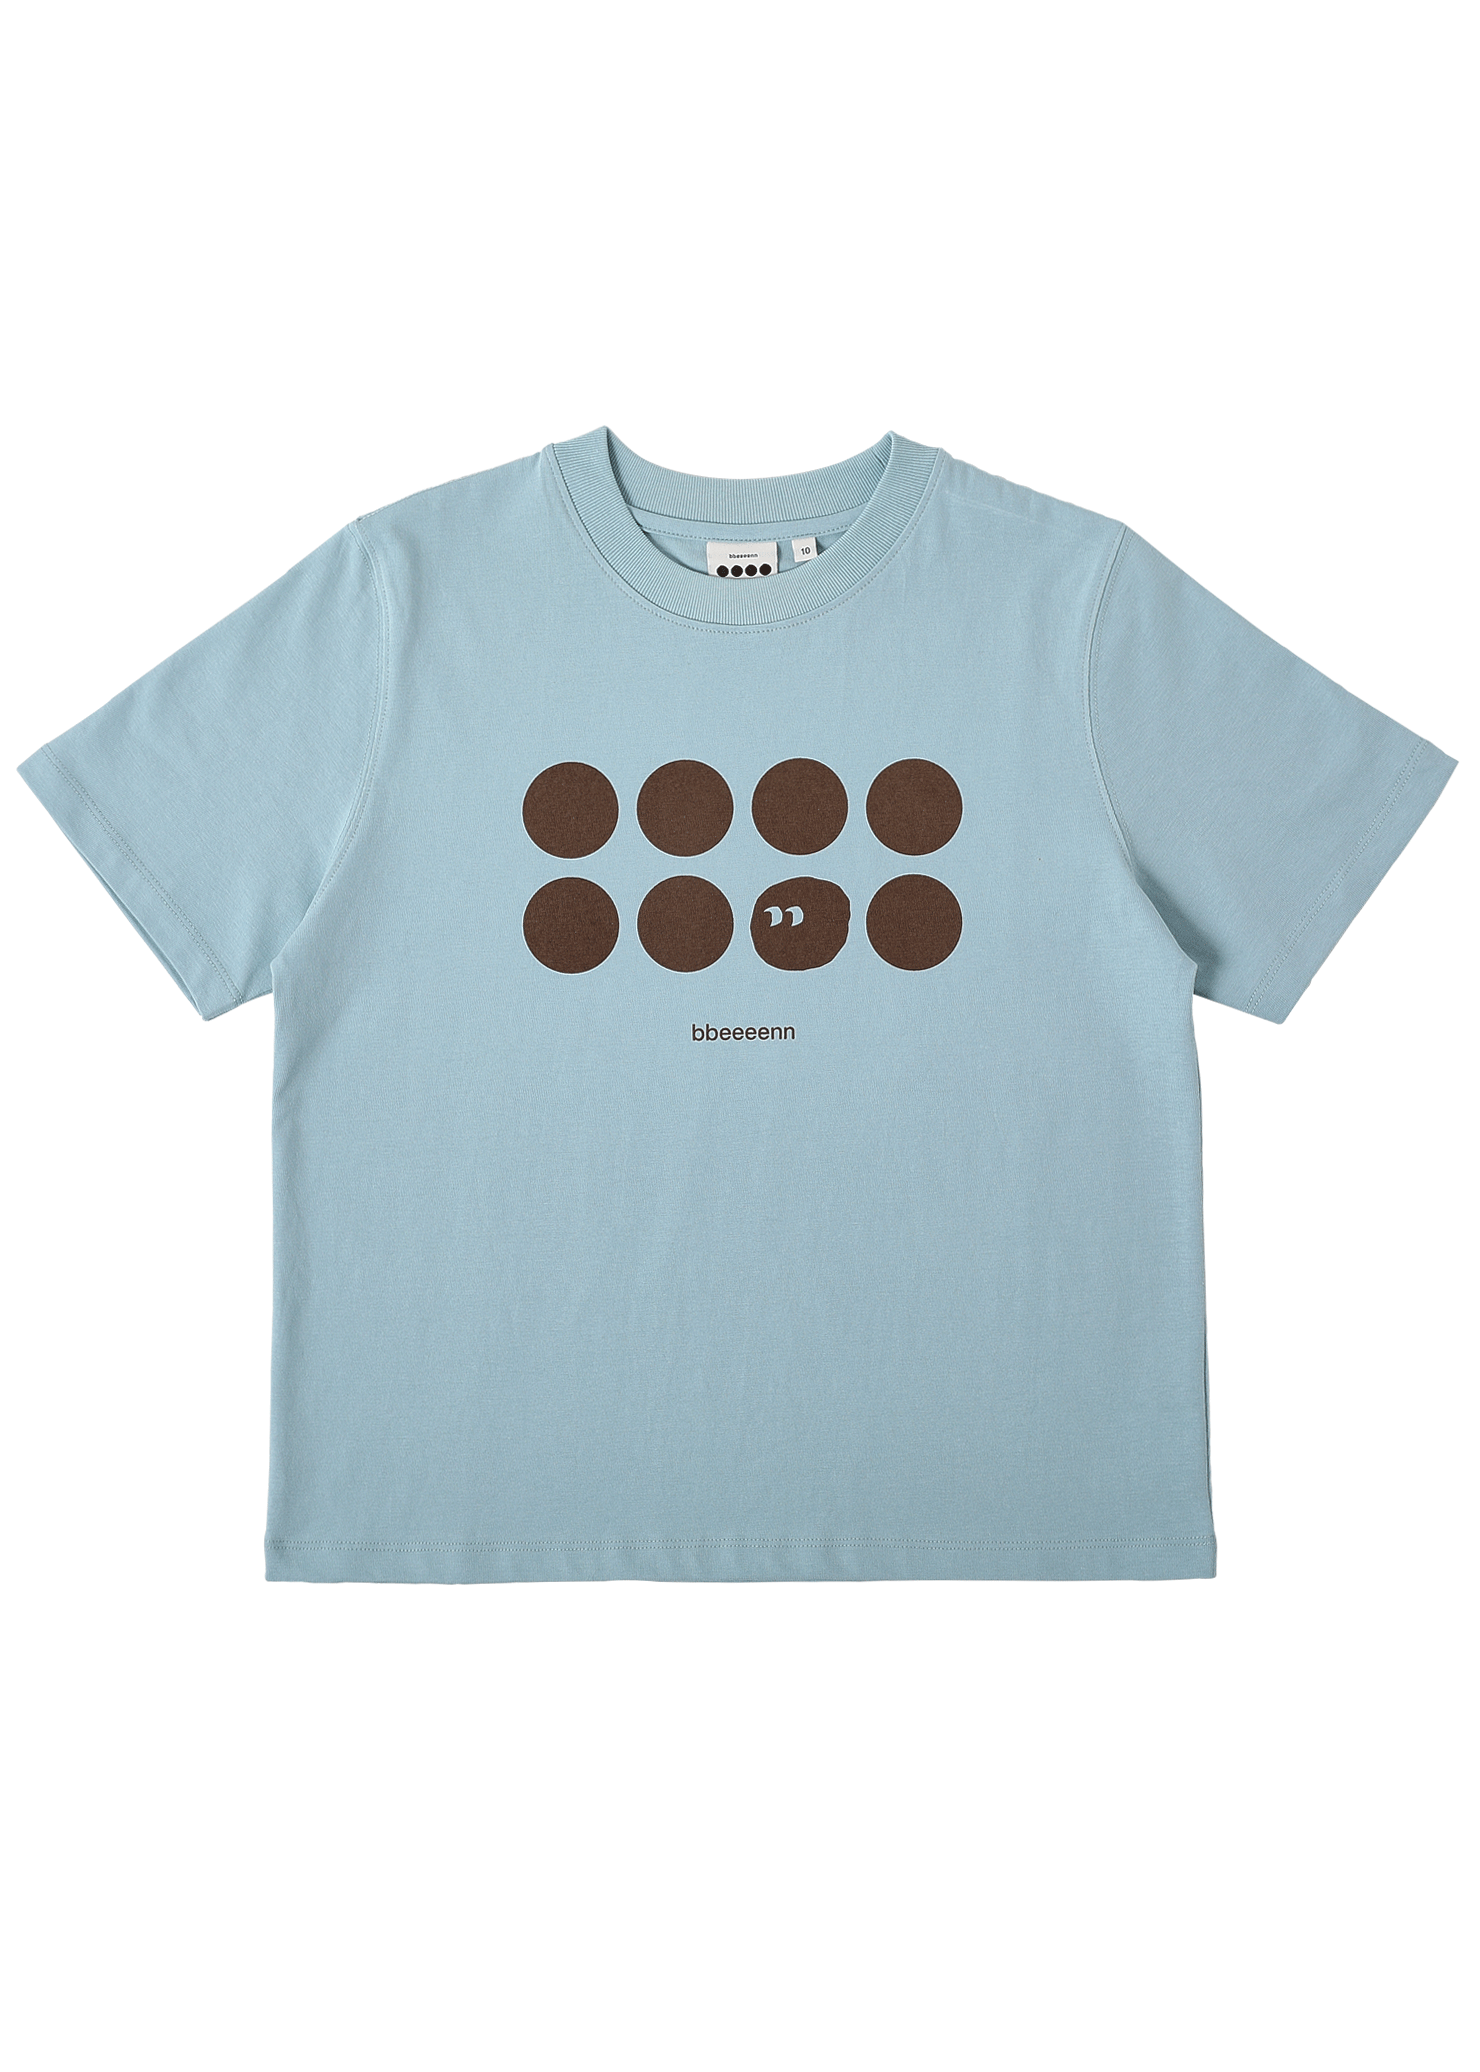 ben Summer 20 Emoji T_Blue